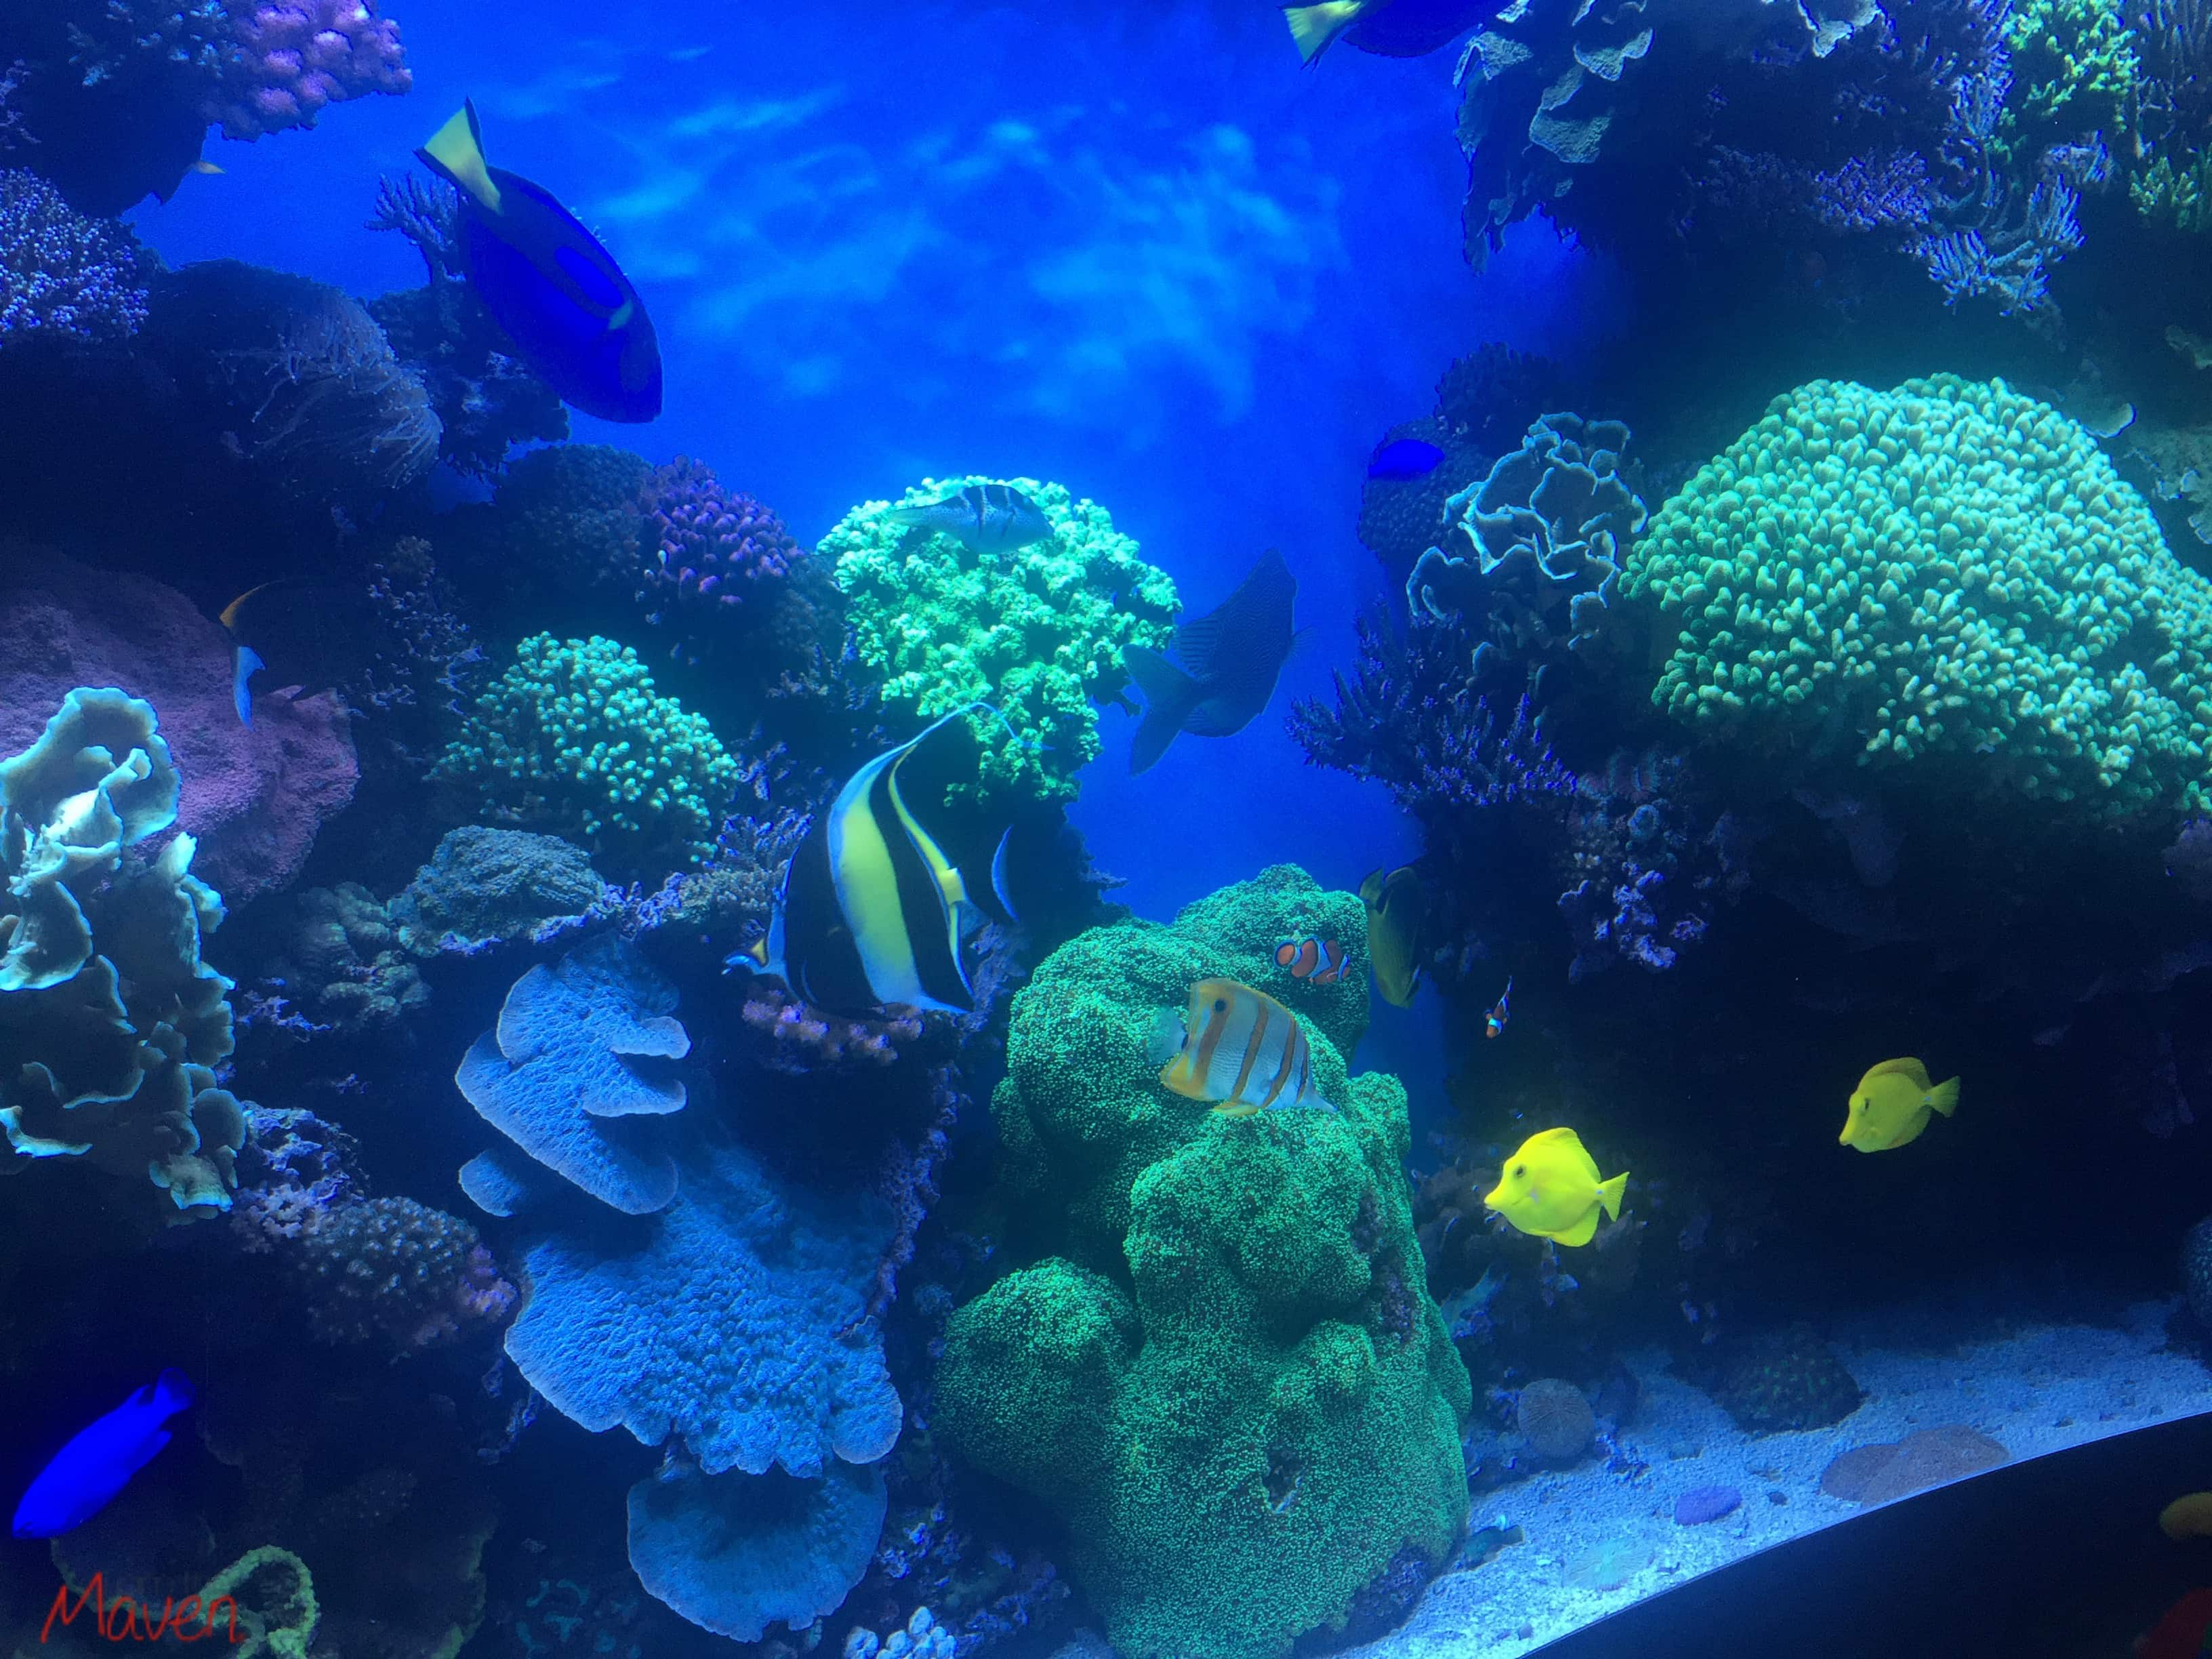 Finding Dory at the Monterey Bay Aquarium #HaveYouSeenHer